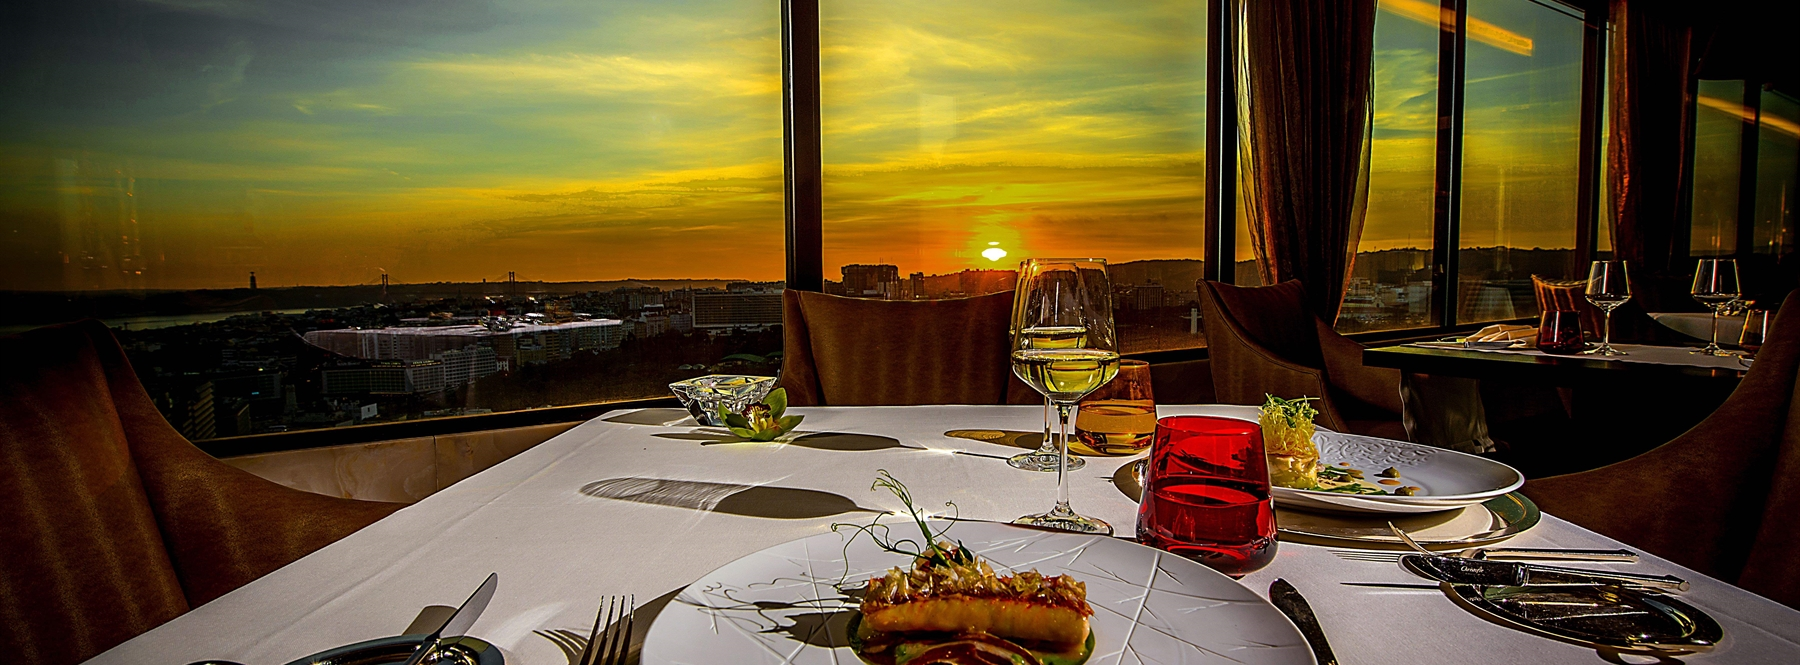 Table set at sunset